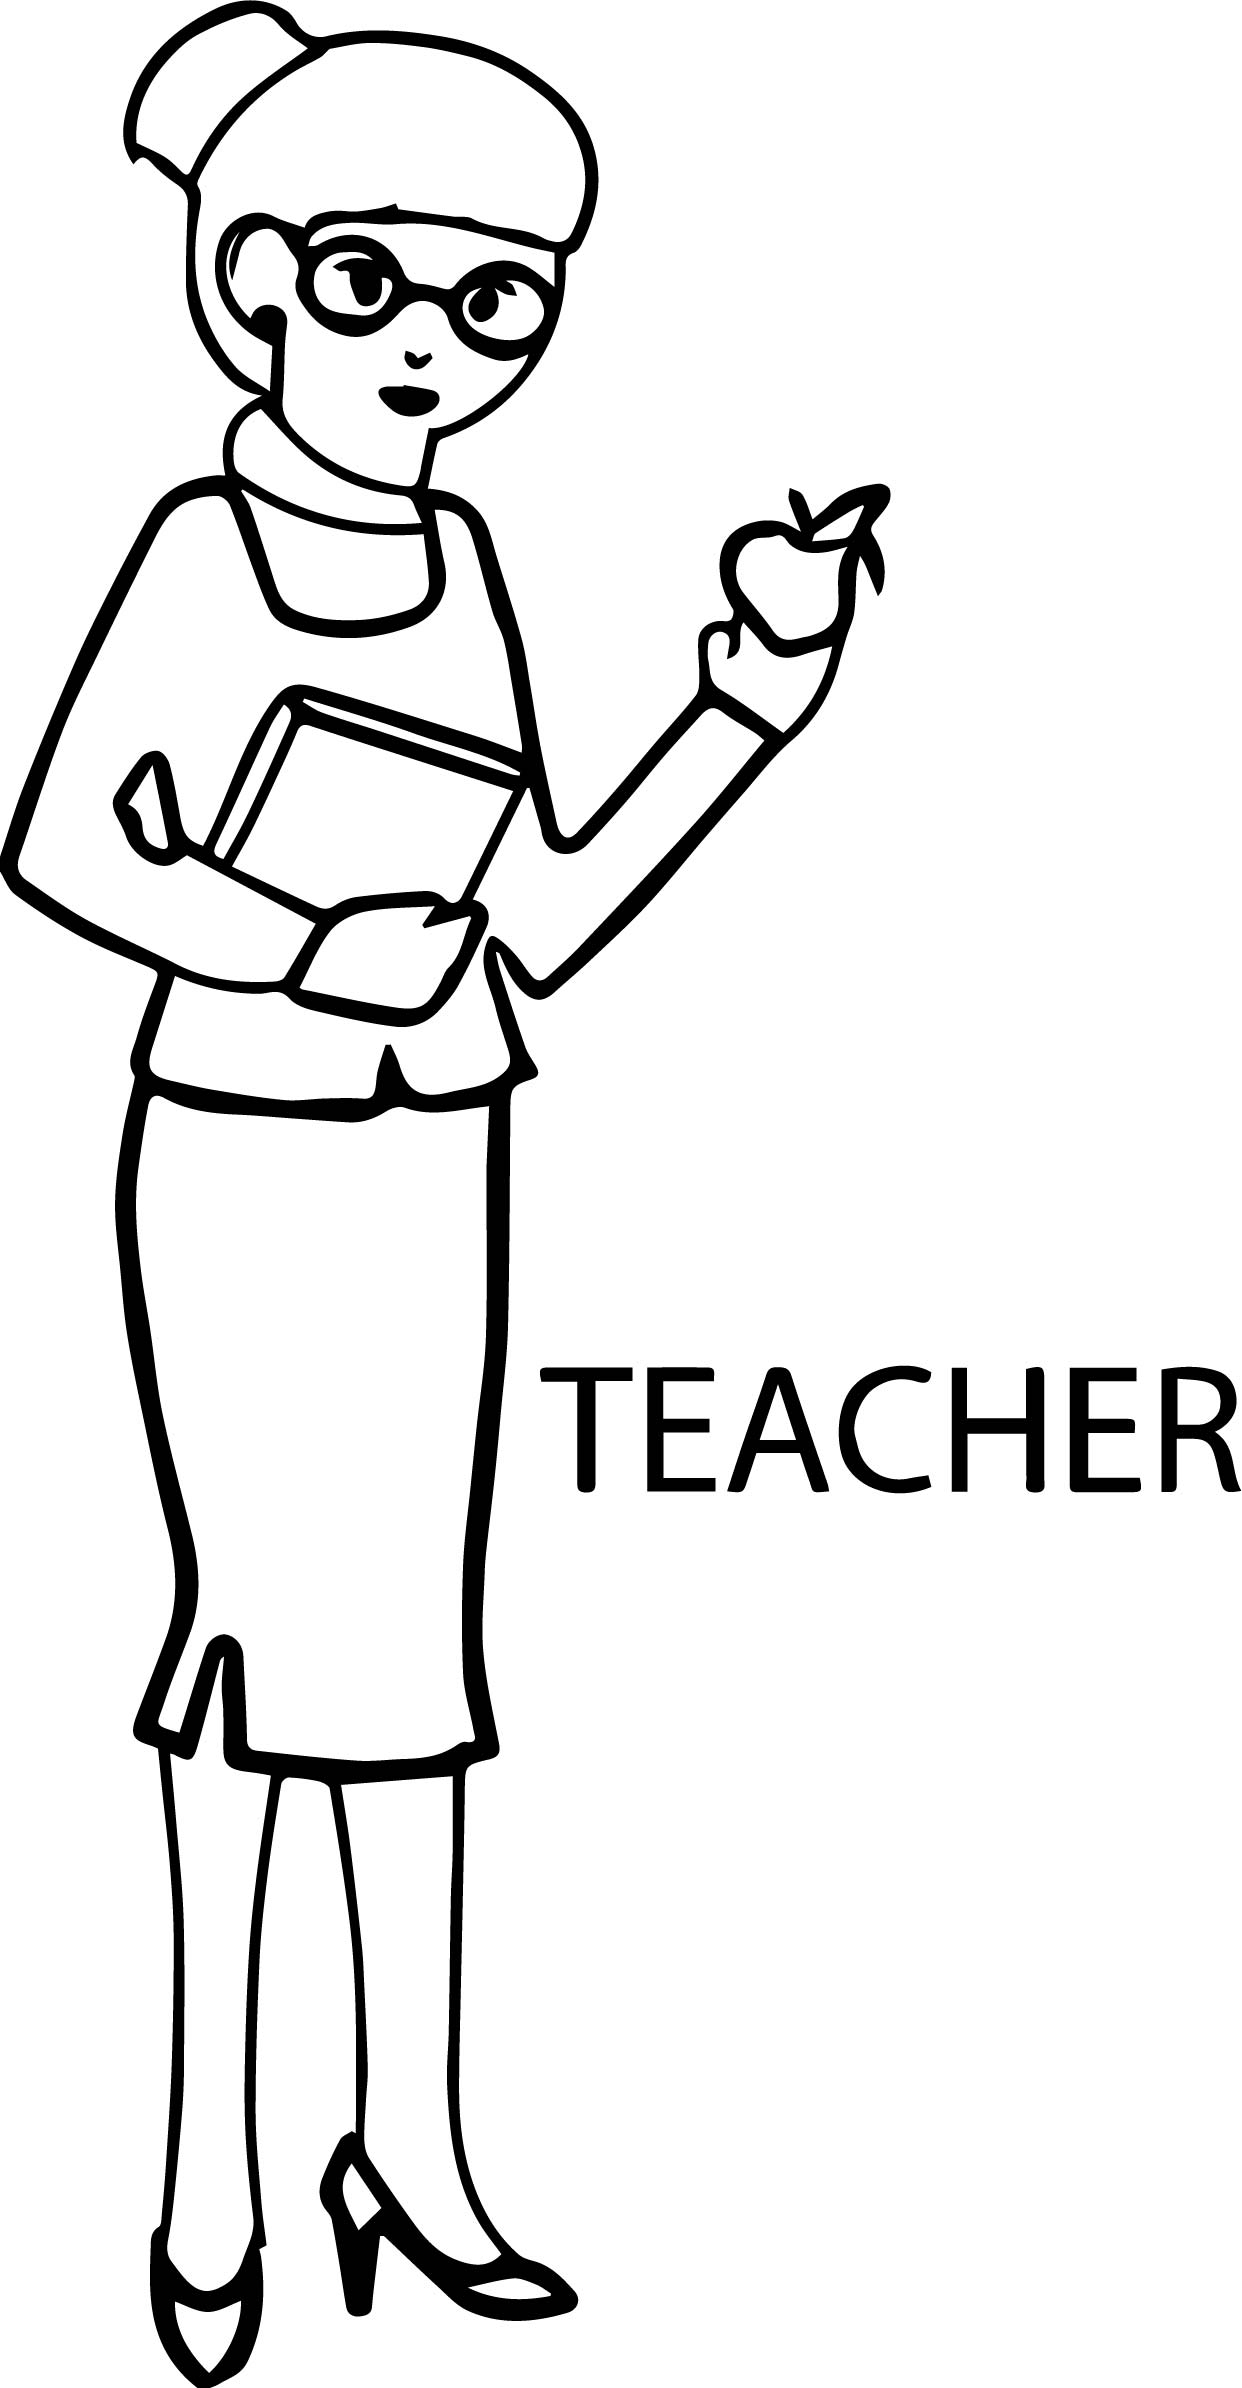 coloring pages of a teacher - photo#8